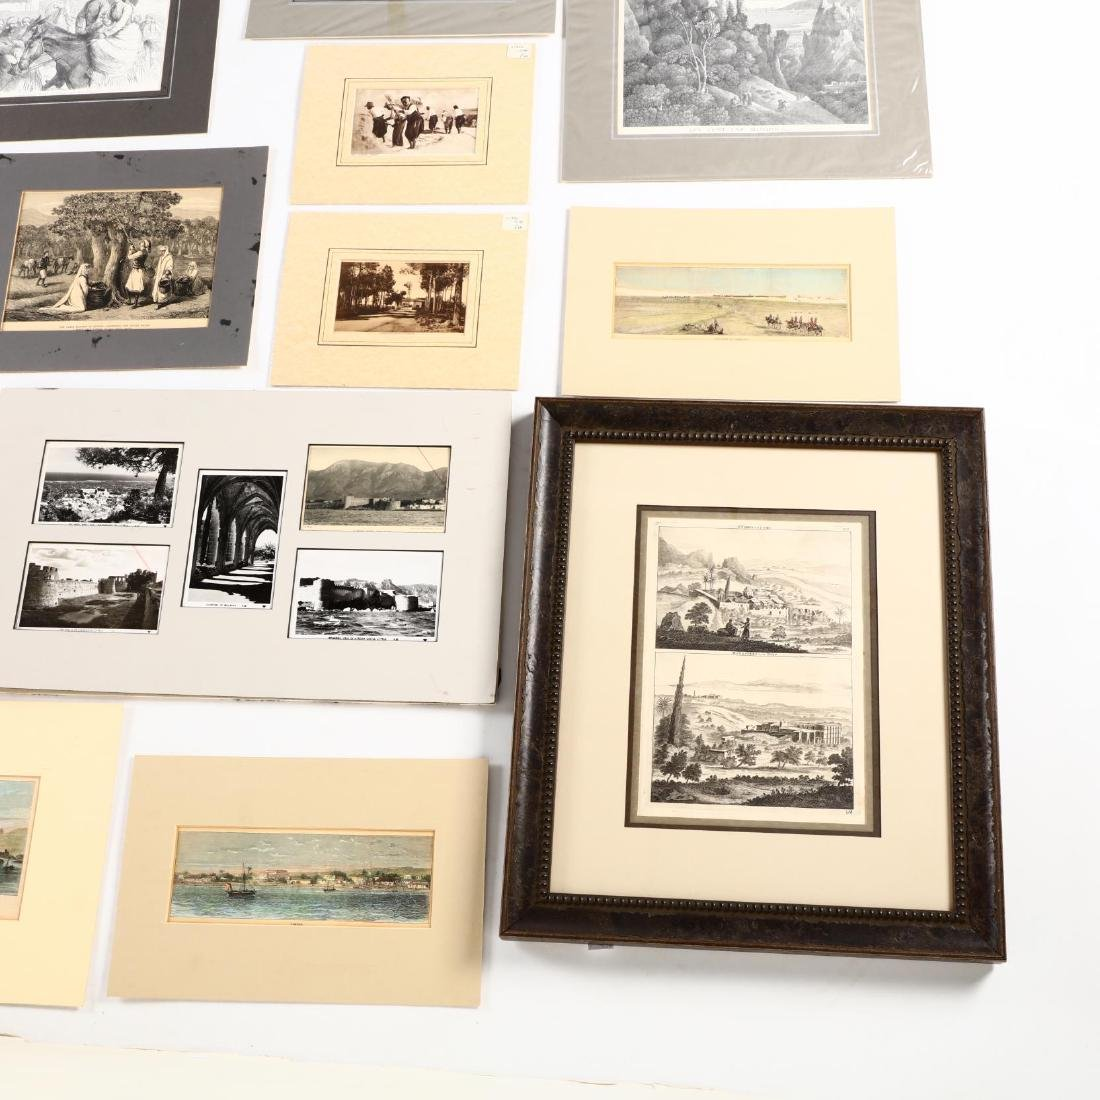 Group of Engravings and Photographs Documenting Old - 3